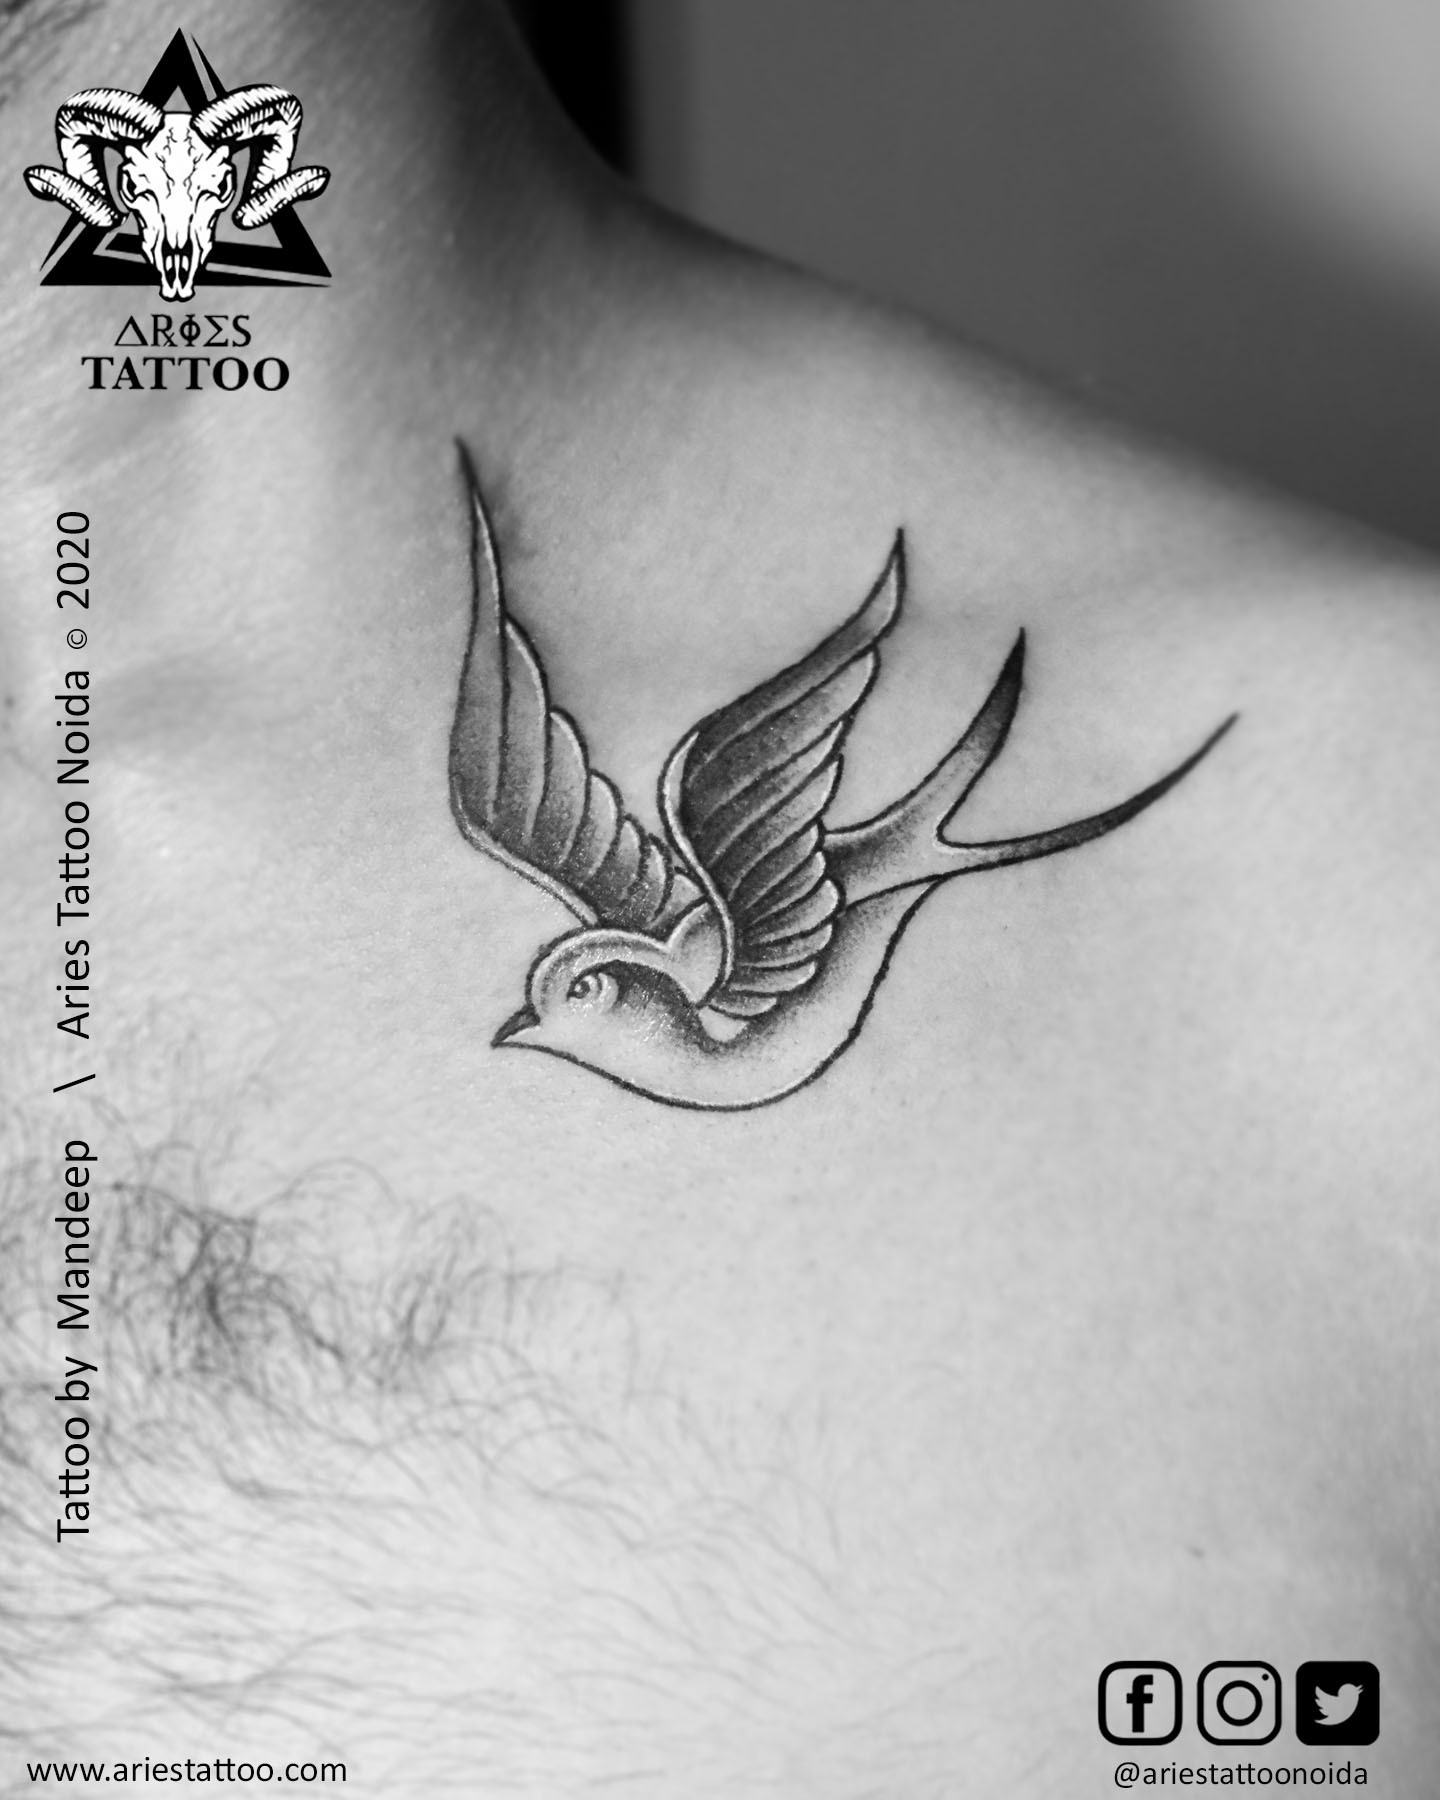 Sparrow tattoo_mandeep_ariestattoonoida| |Aries Tattoo Noida | Tattoo Shop and Studio In Noida